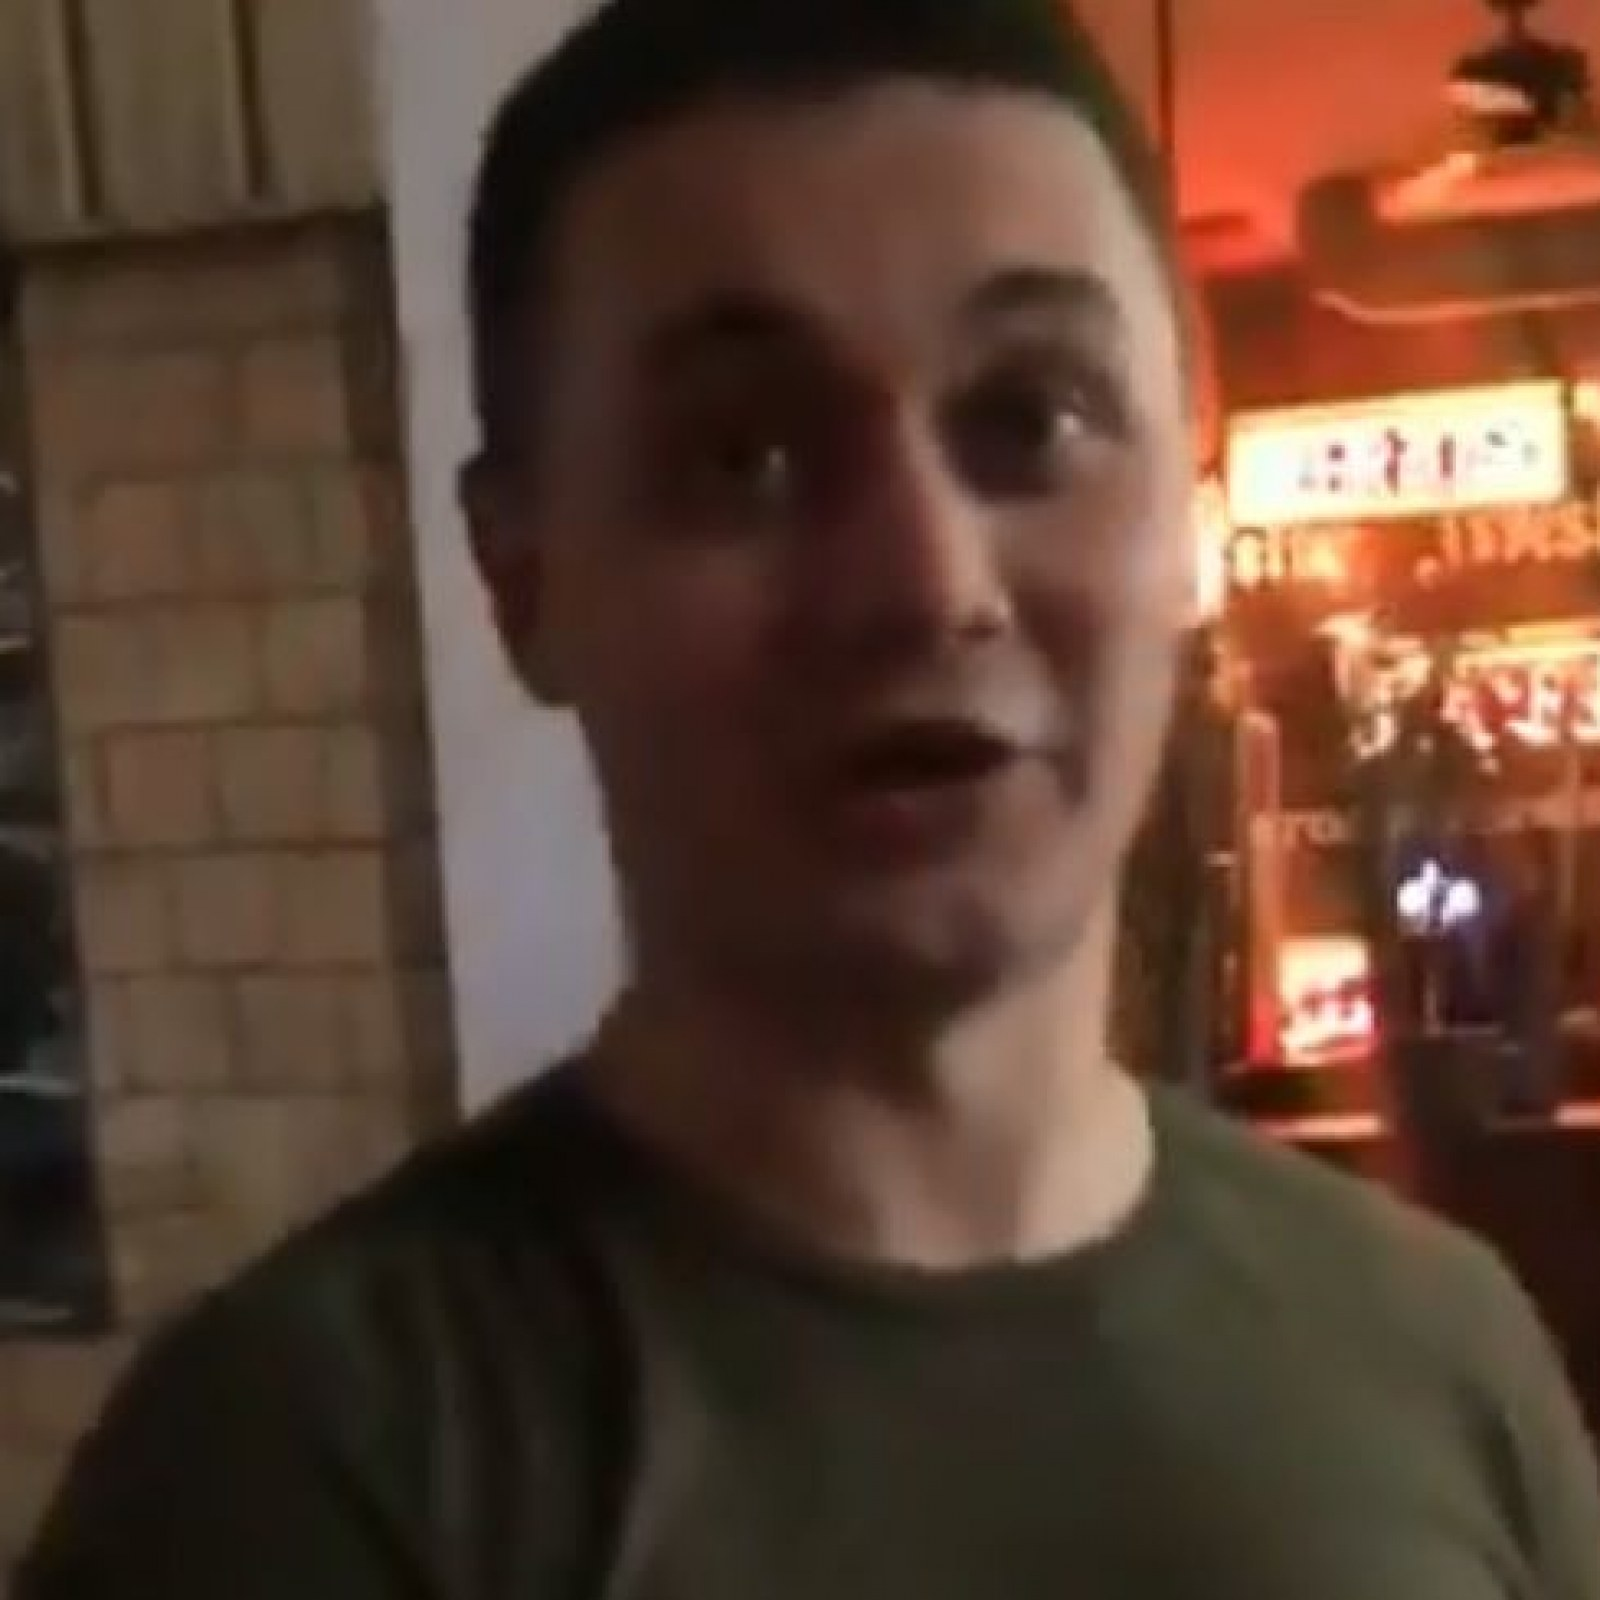 Video: Utah Police Hunt Man Who Asked 'Are You Gay Though